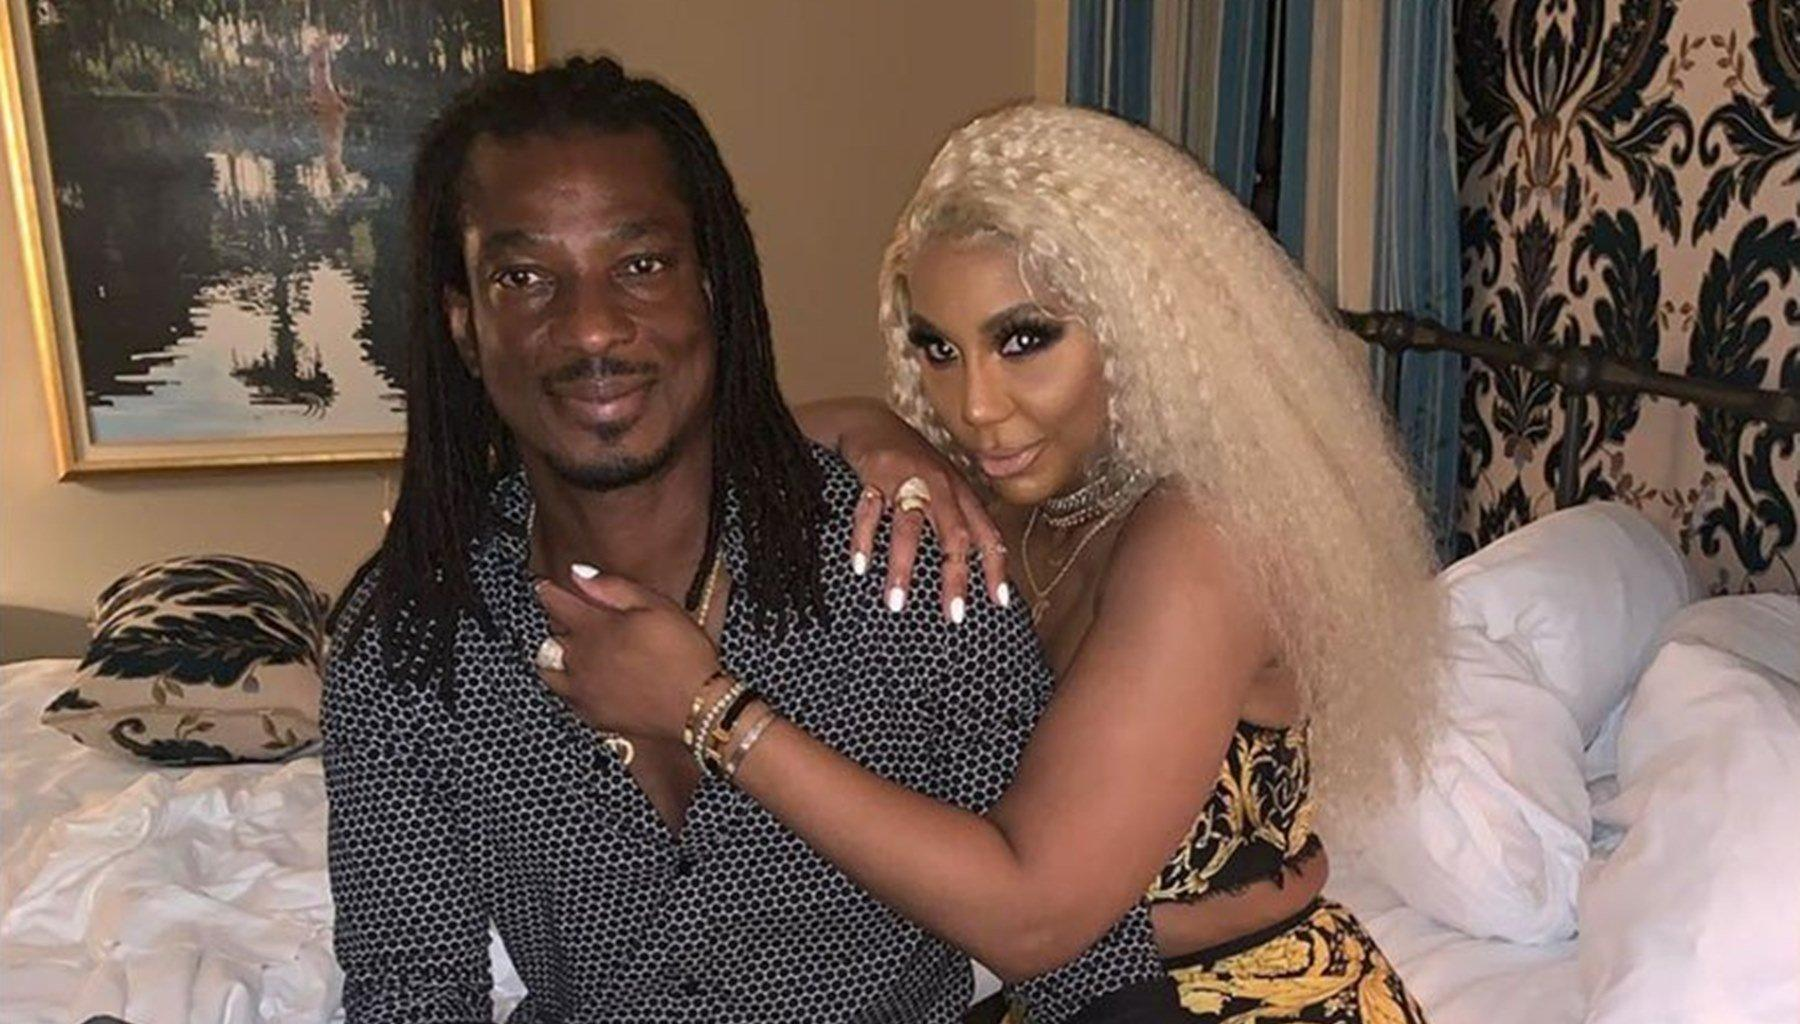 Tamar Braxton And Boyfriend David Adefeso Have A Special Guest On Their 'Quarantined And Coupled' Series: 'Leave Your Shame At The Door'